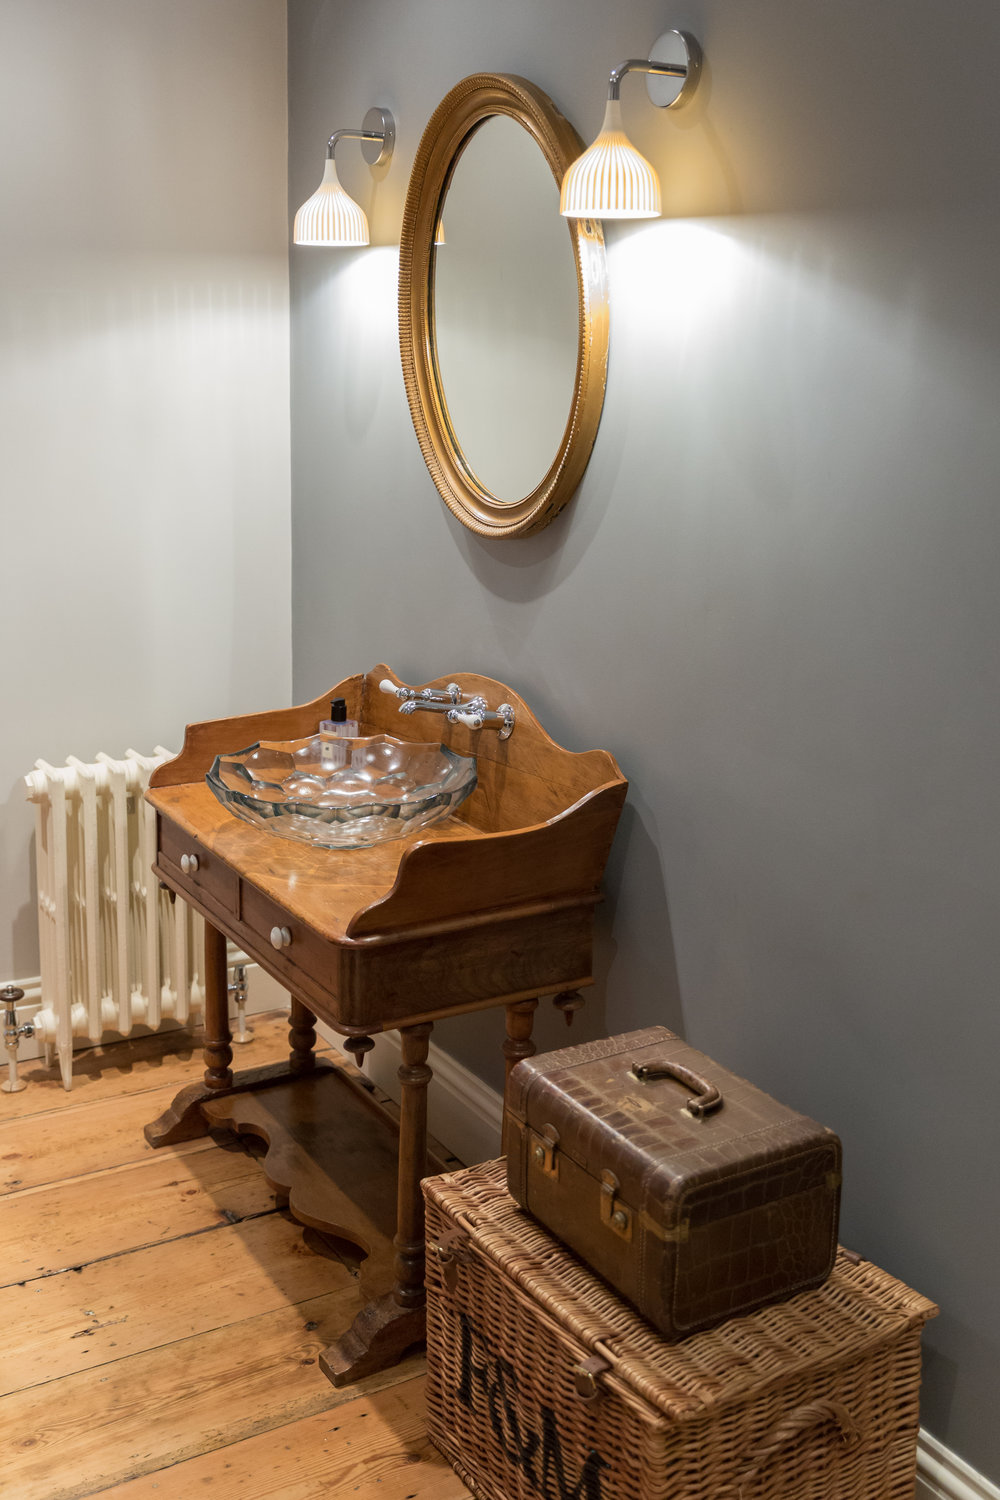 Period bathroom with antique washstand